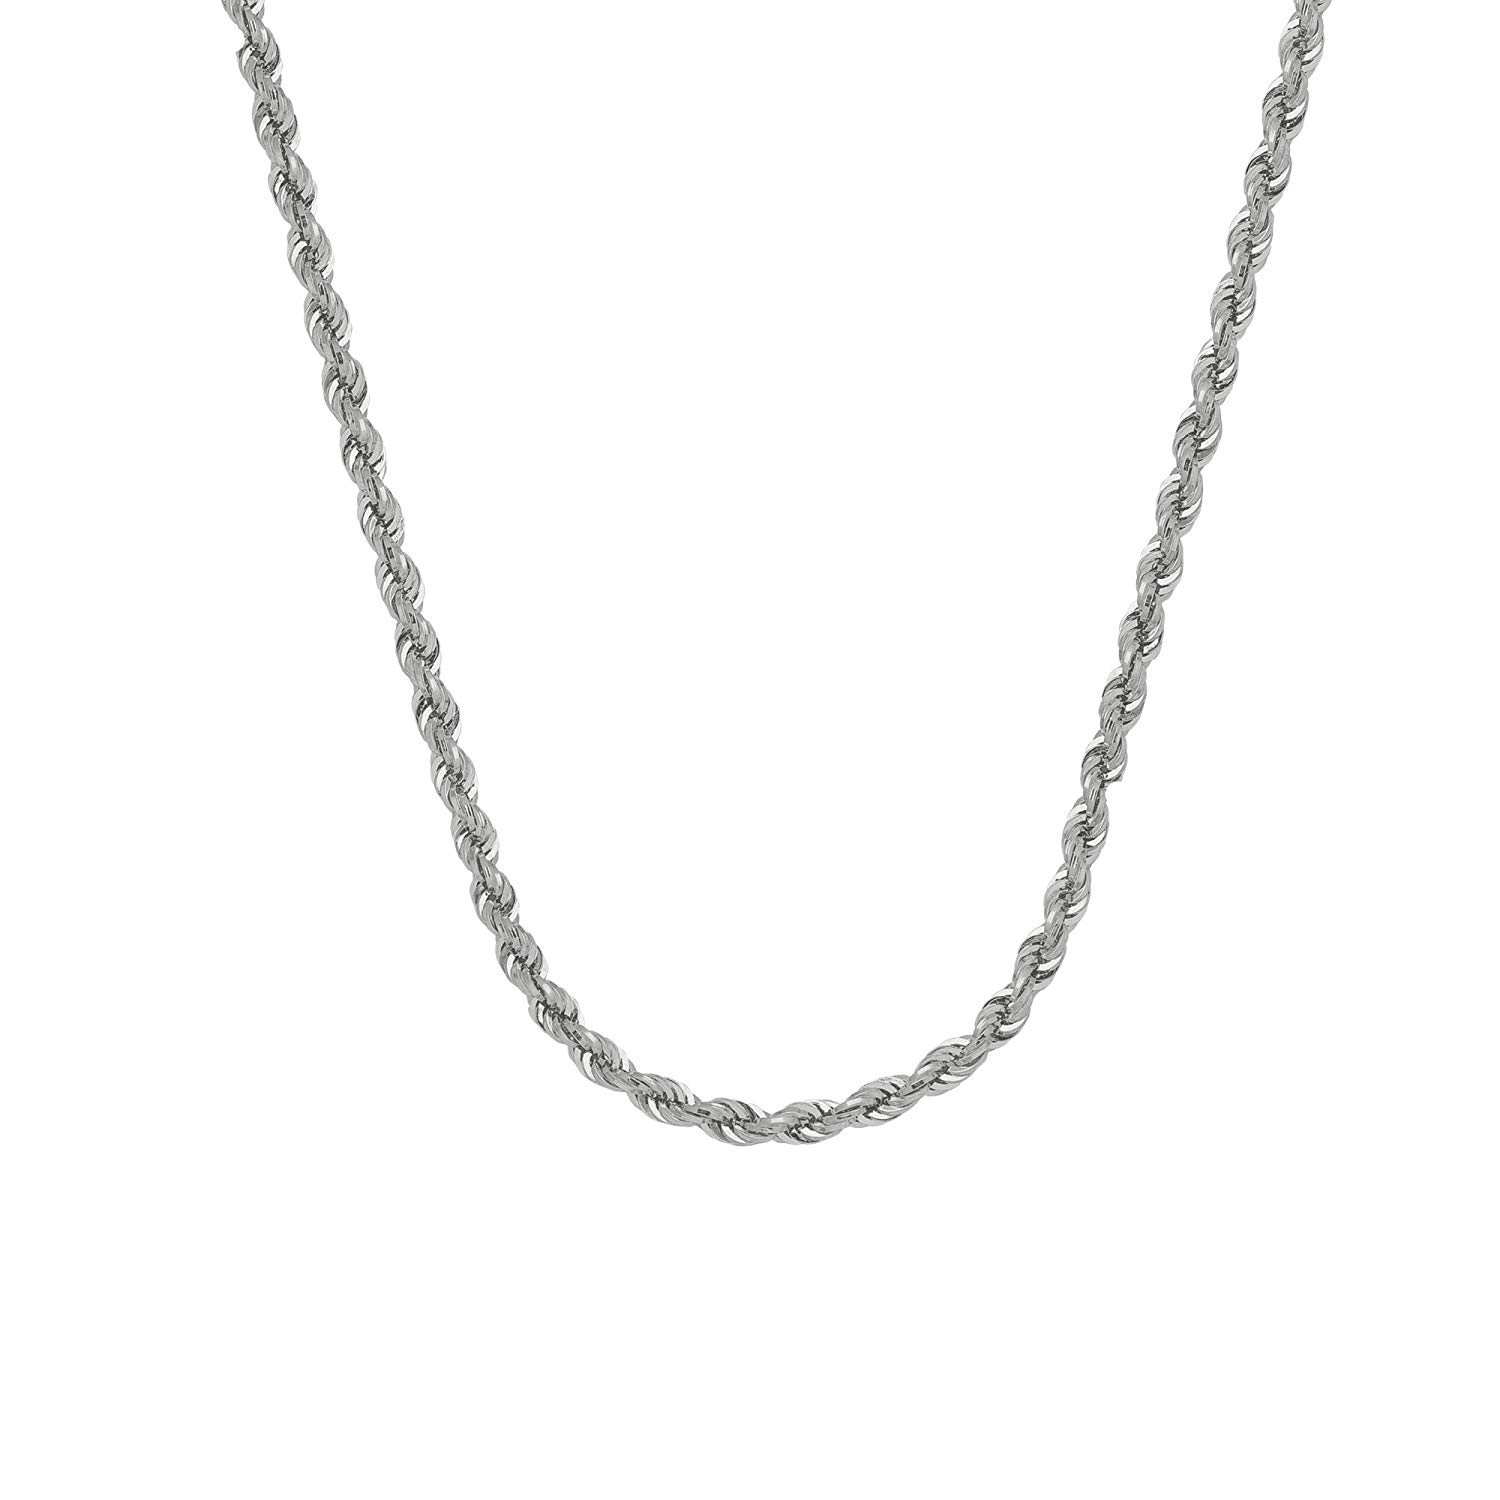 Solid Silver Fashion Jewelry Strong Wrest Rope Chain Men Women Necklace 4MM N067